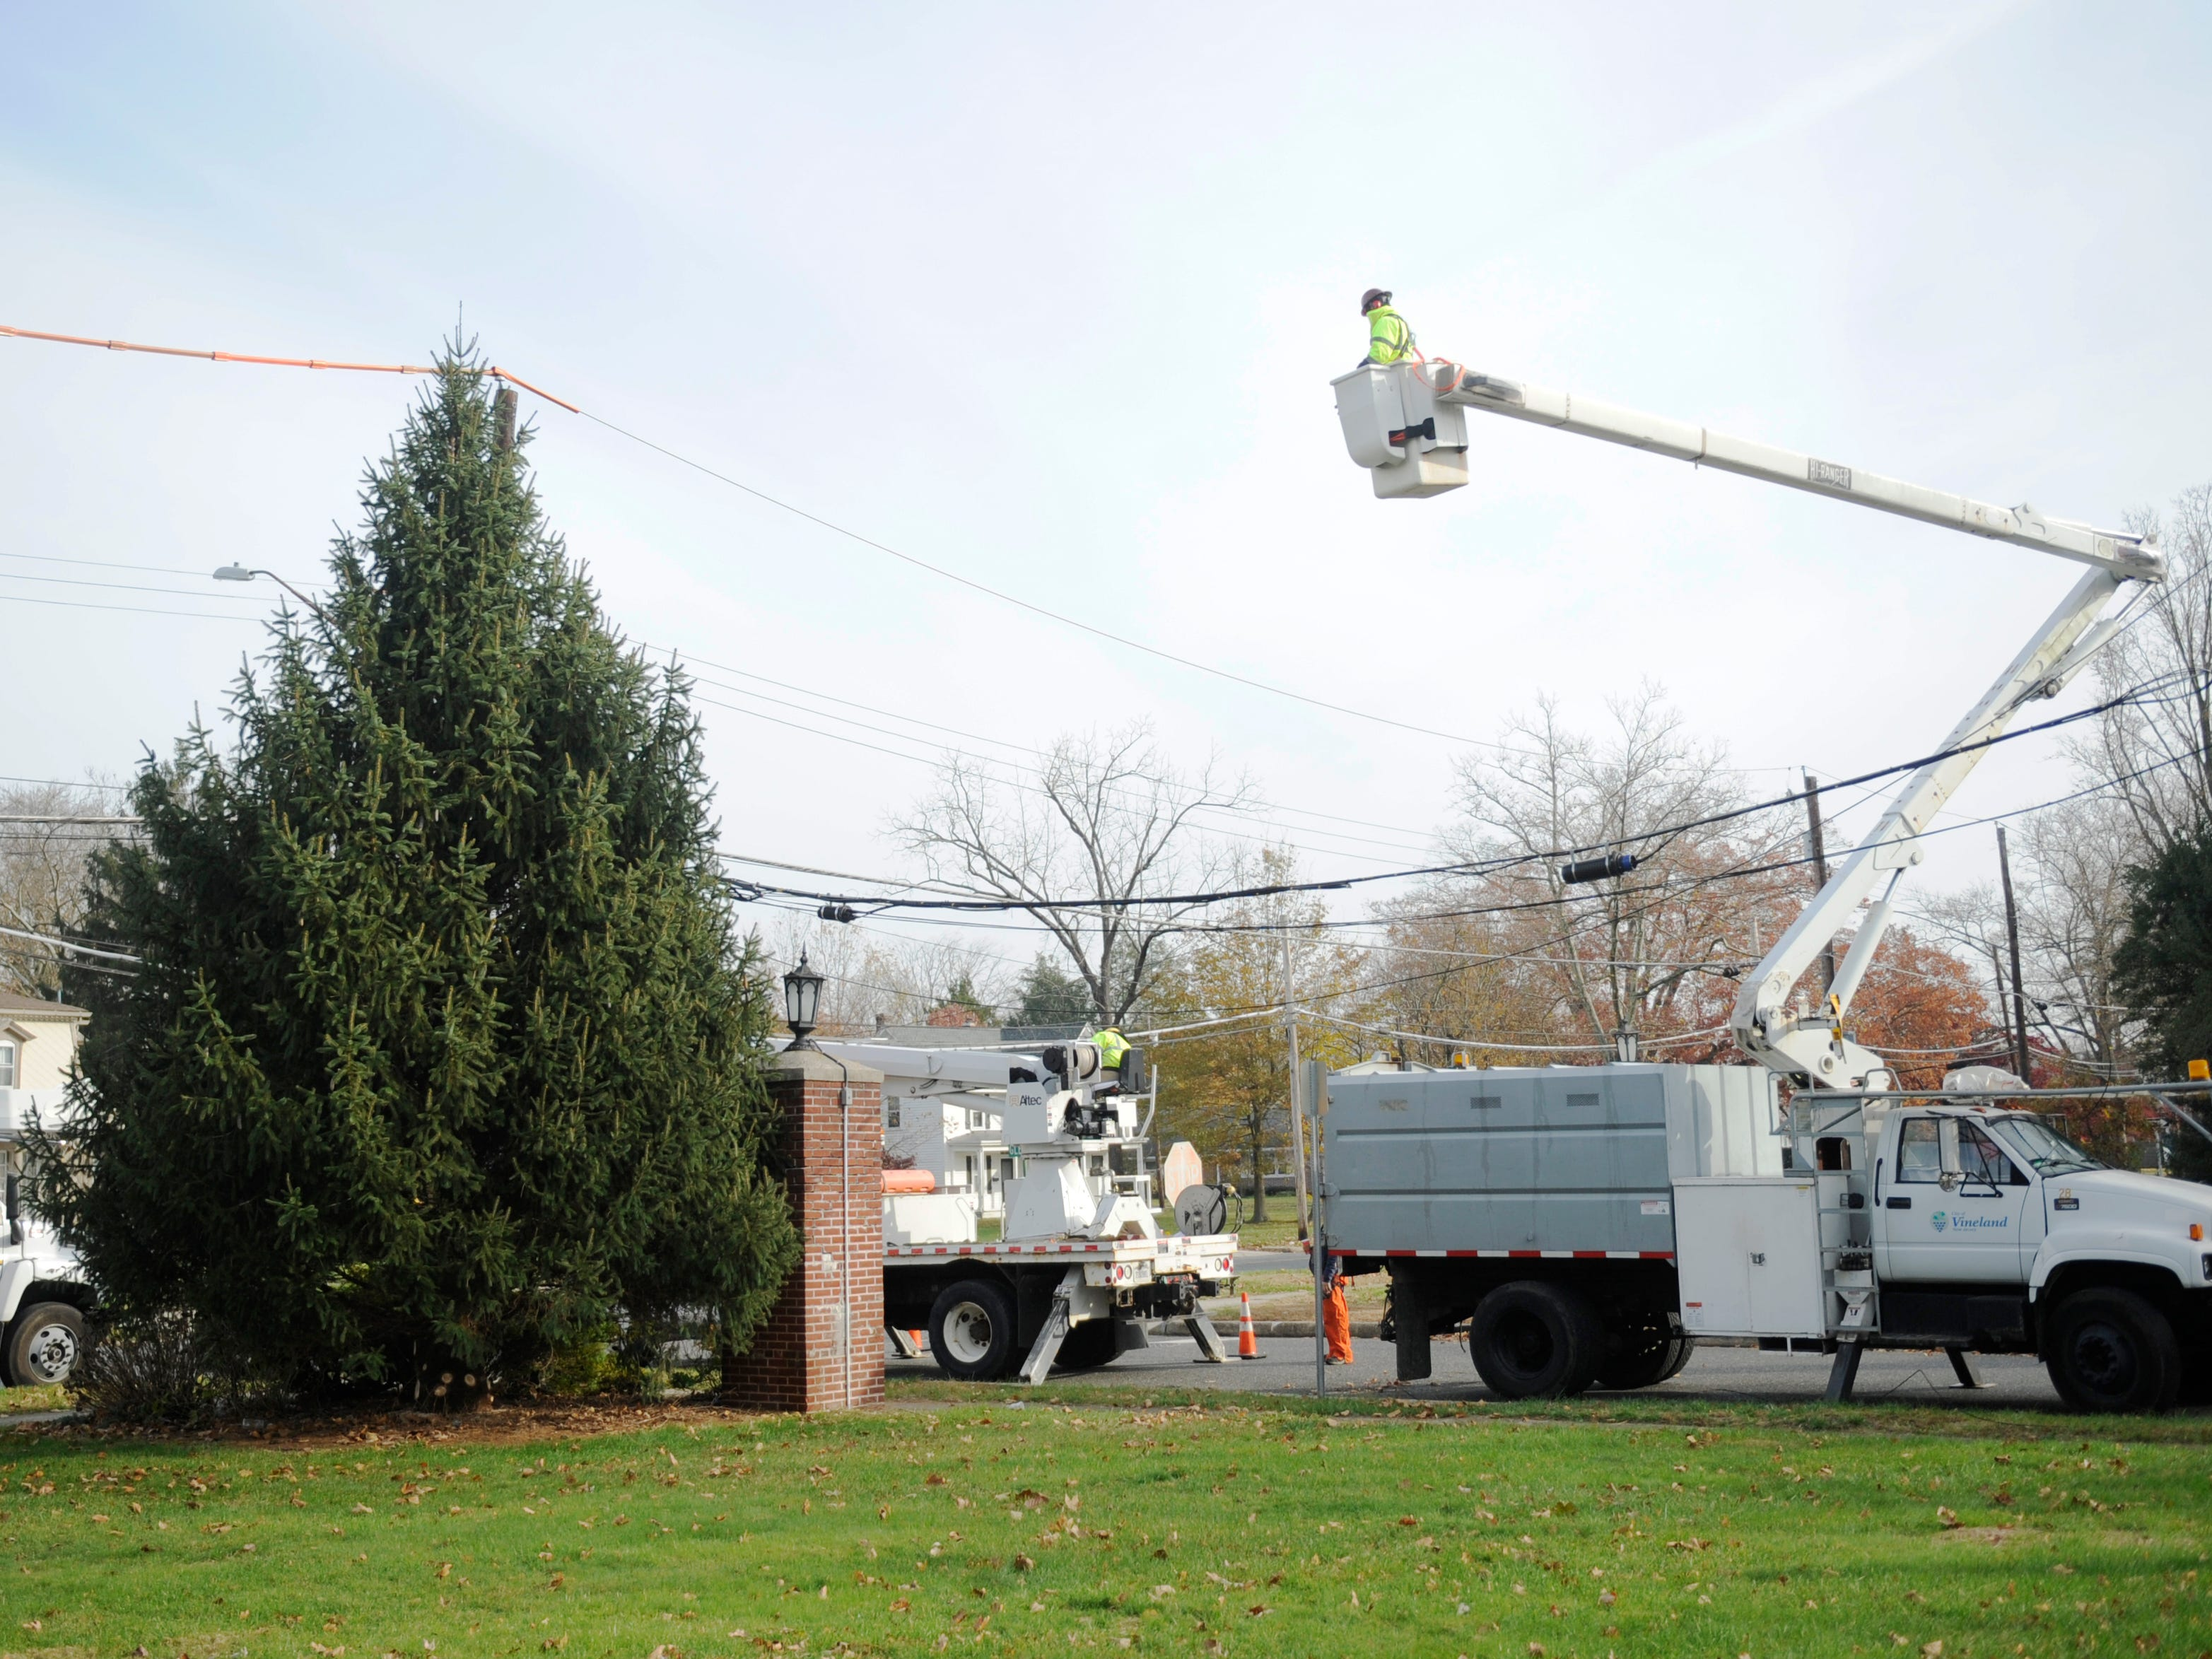 Vineland public works employees cut down a donated Christmas tree that is on display in front of city hall on Monday, November 19, 2018.